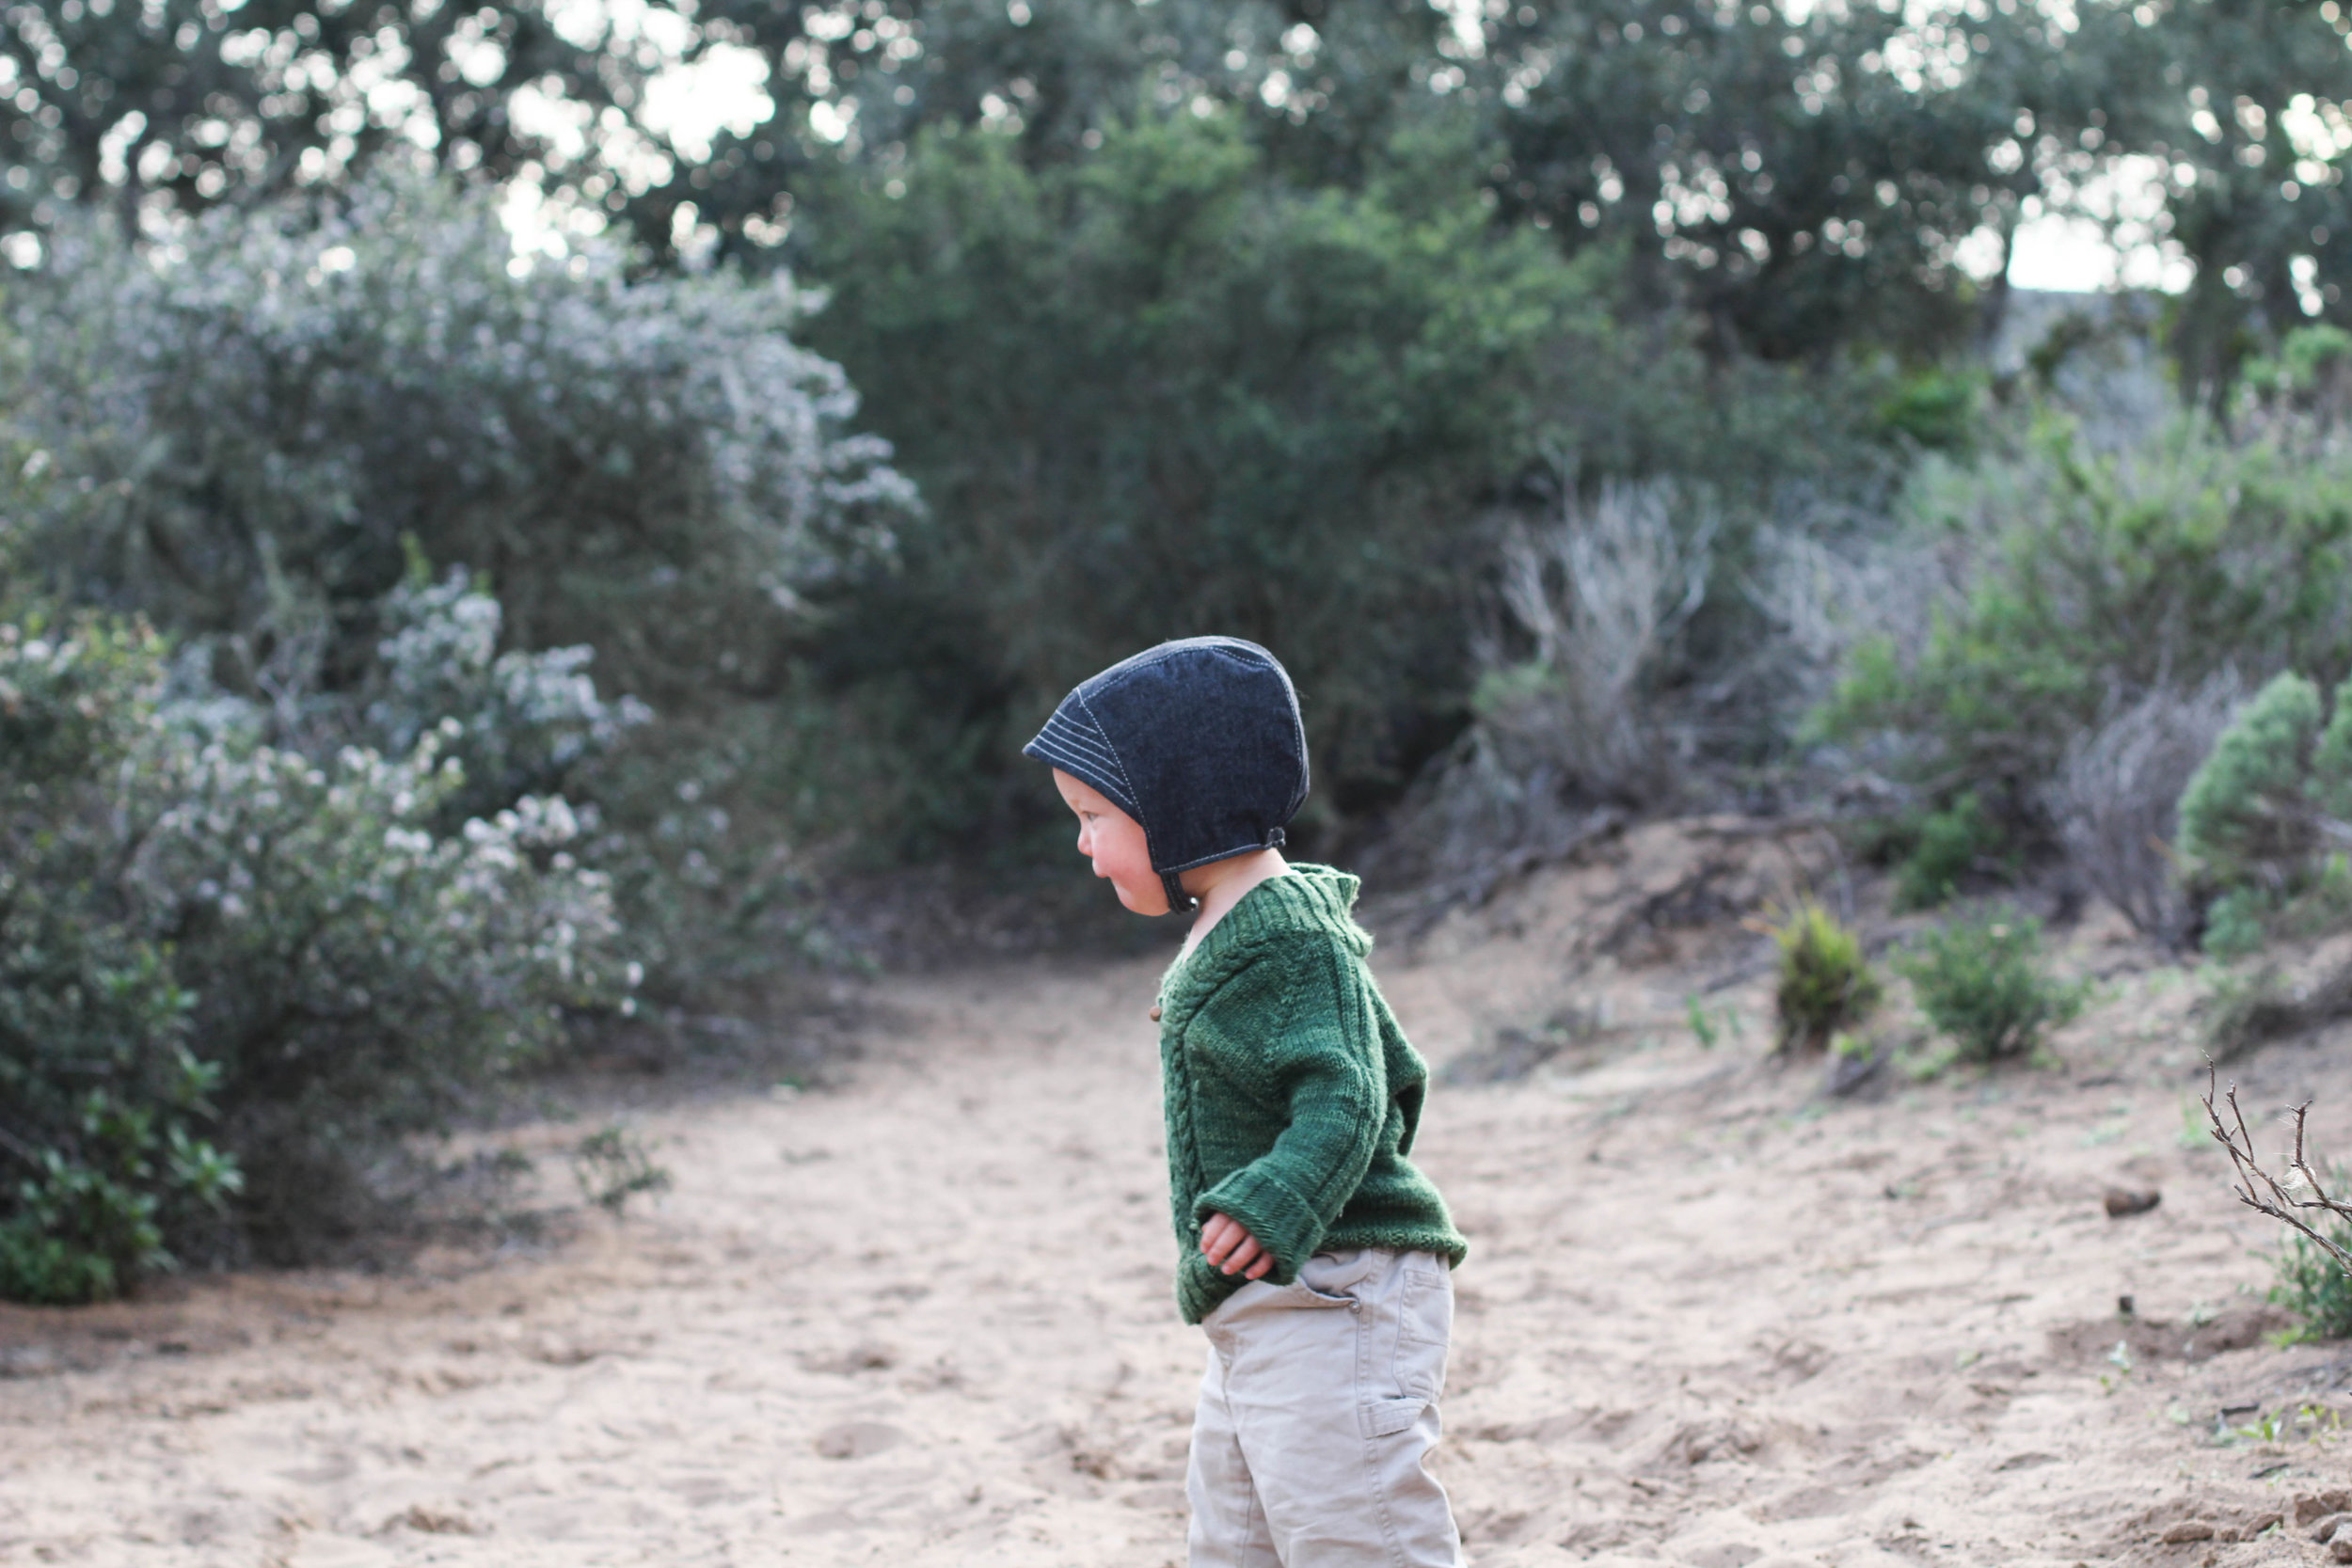 Baby Sun Bonnets for Adventure Boys via bluecorduroy.com